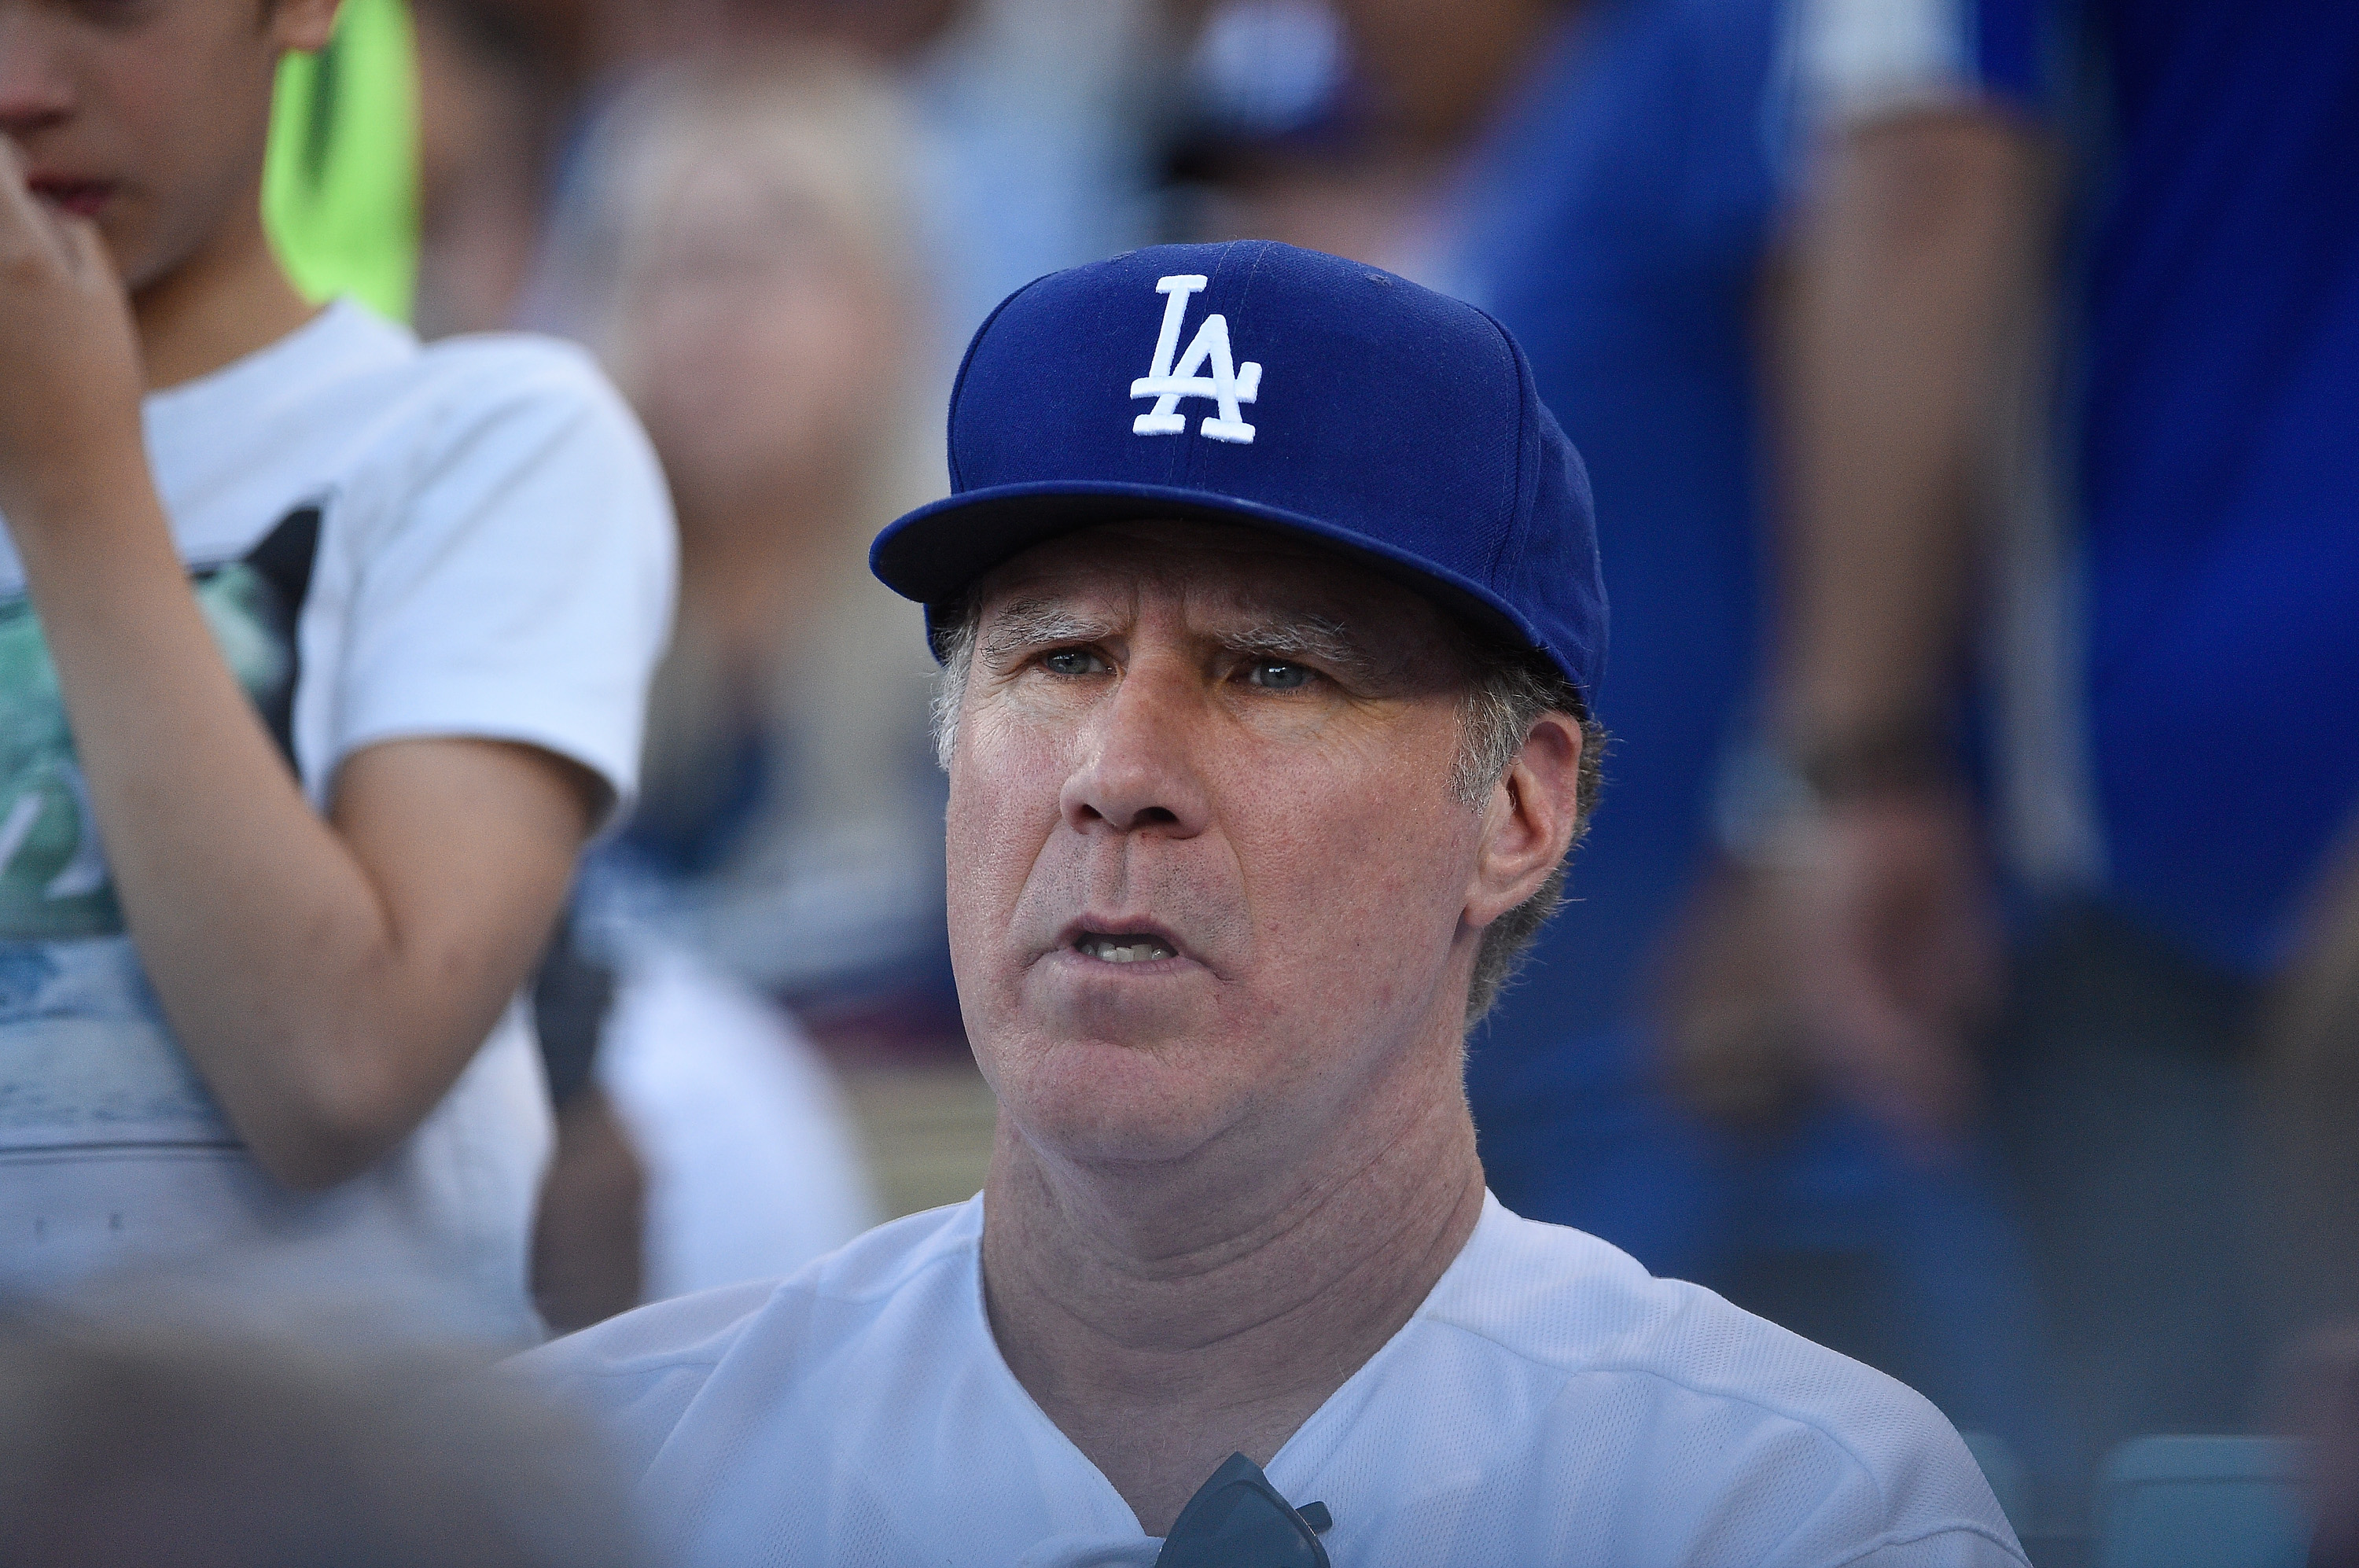 Actor Will Ferrell attends Game Three of the National League Championship Series between the Milwaukee Brewers and the Los Angeles Dodgers at Dodger Stadium on October 15, 2018 in Los Angeles, California. (Photo by Kevork Djansezian/Getty Images)